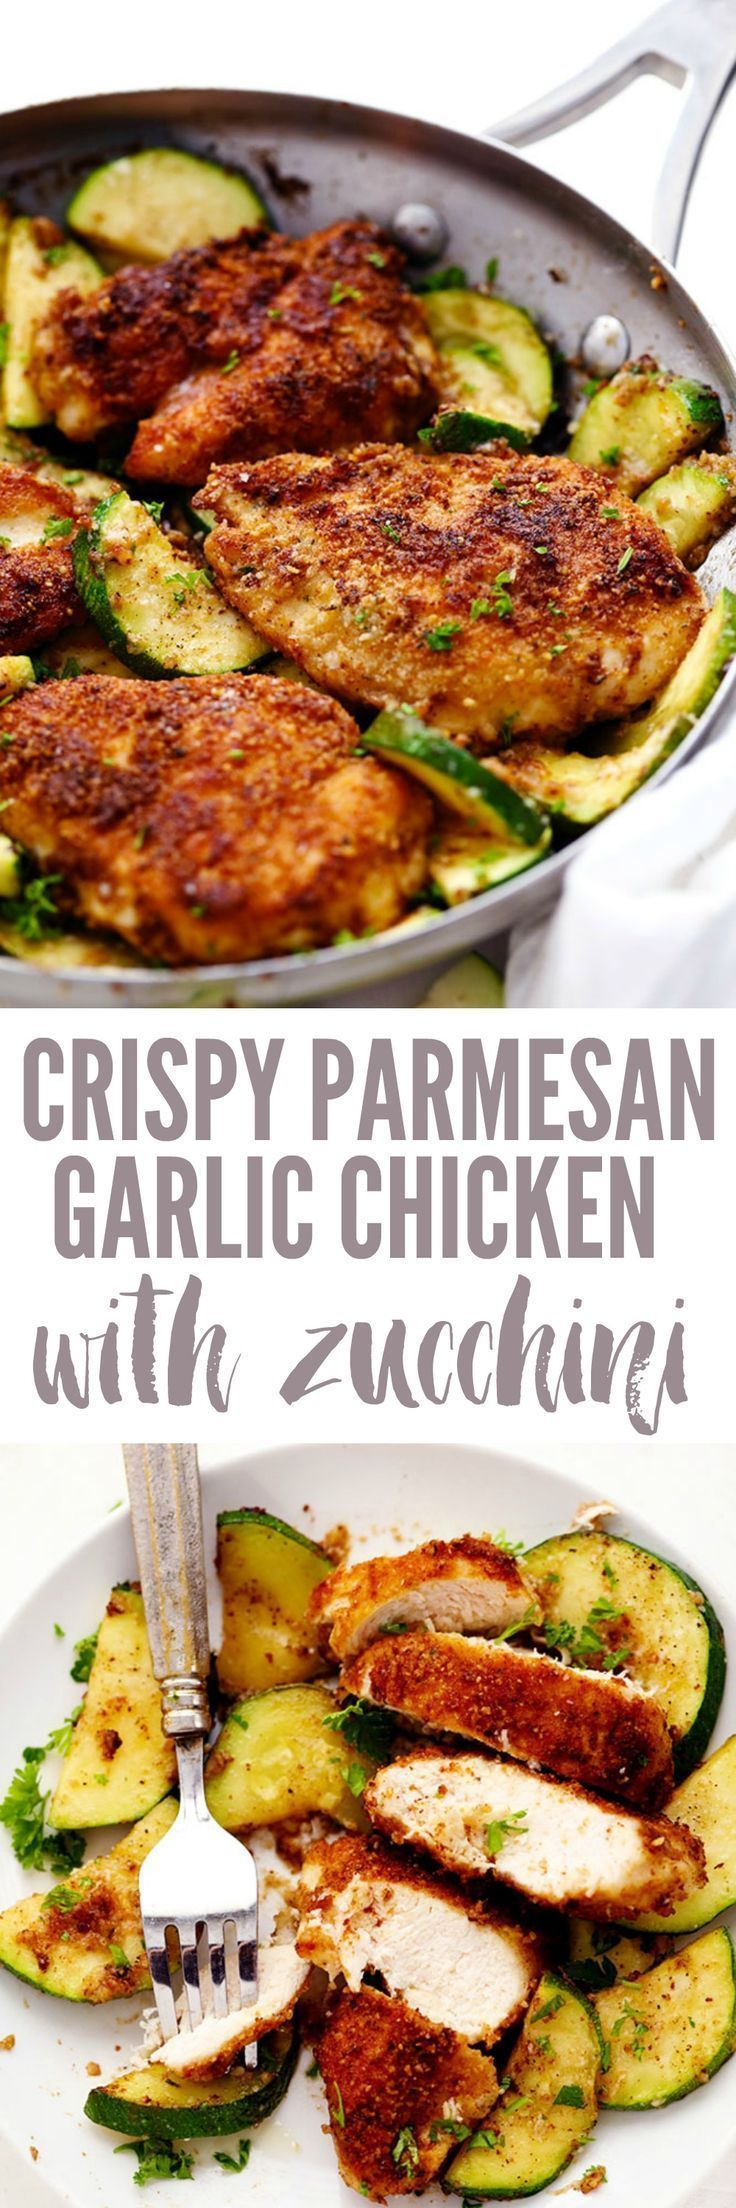 Crispy Parmesan Garlic Chicken with Zucchini is a fantastic one pan meal that the family will love! The chicken is so tender and breaded with an amazing parmesan garlic crust and the zucchini is sauted in a delicious buttery parmesan garlic!